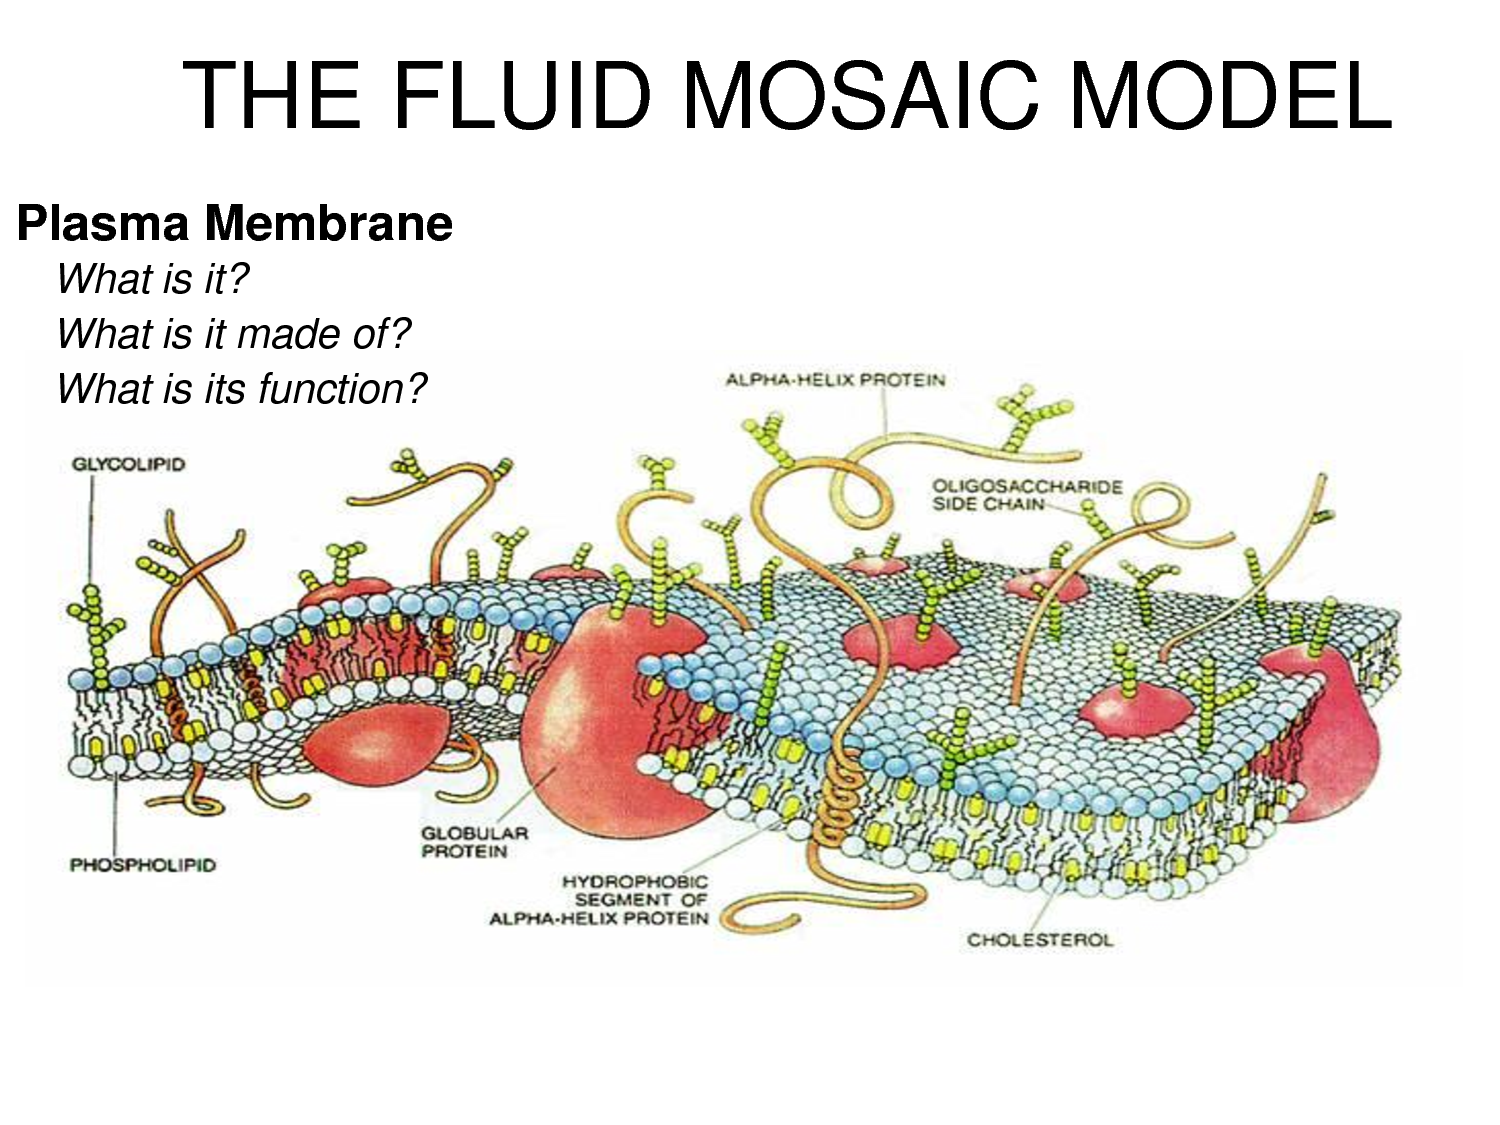 describe the fluid mosaic model of a In 1972 the fluid-mosaic membrane model of membrane structure was  this  basic model of the cell membrane remains relevant for describing.